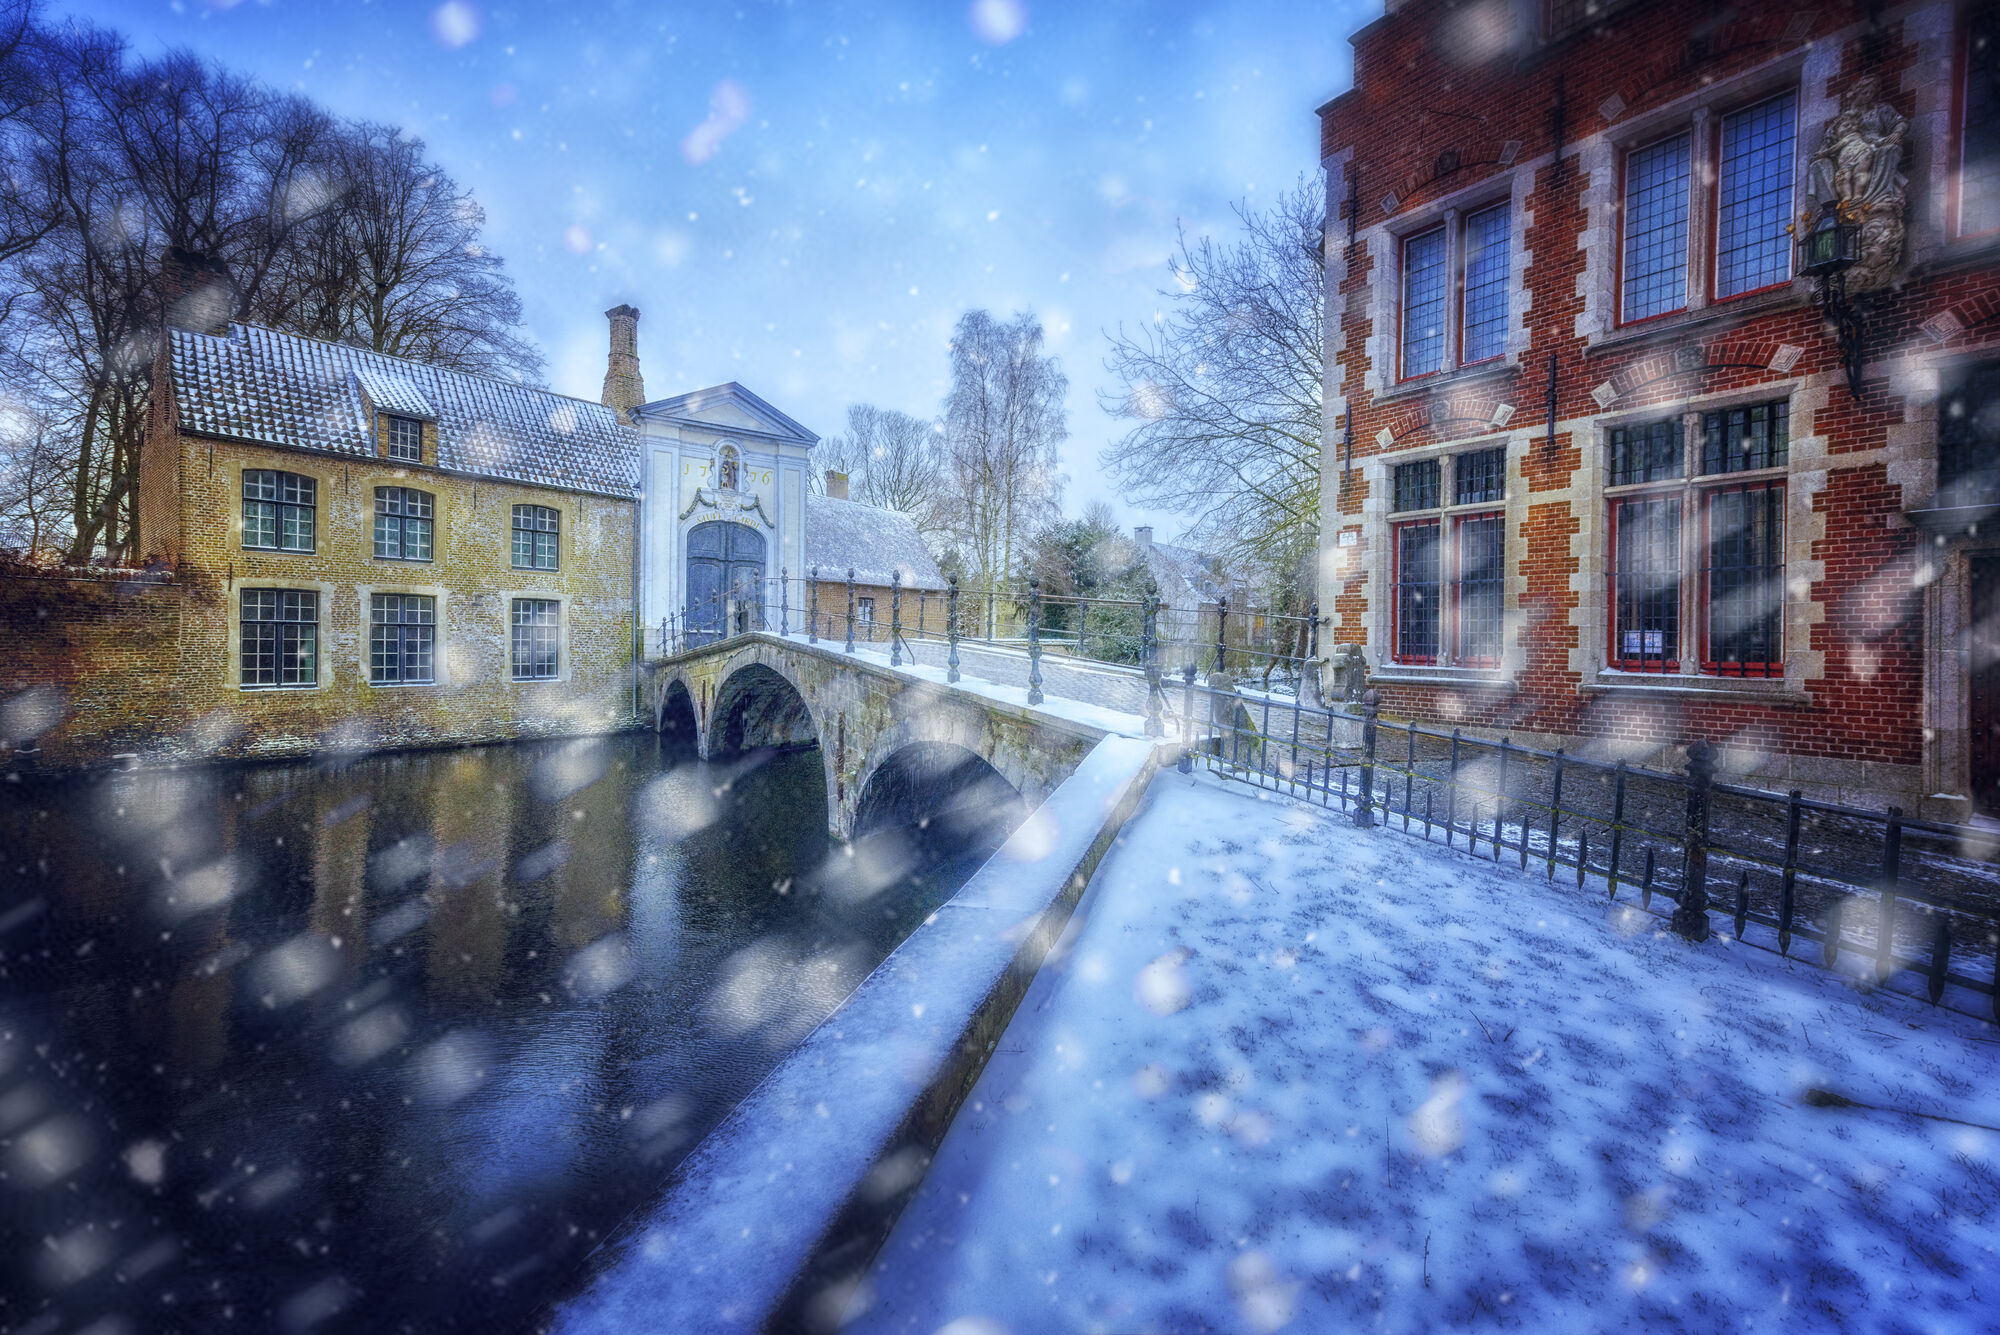 Winter in Bruges